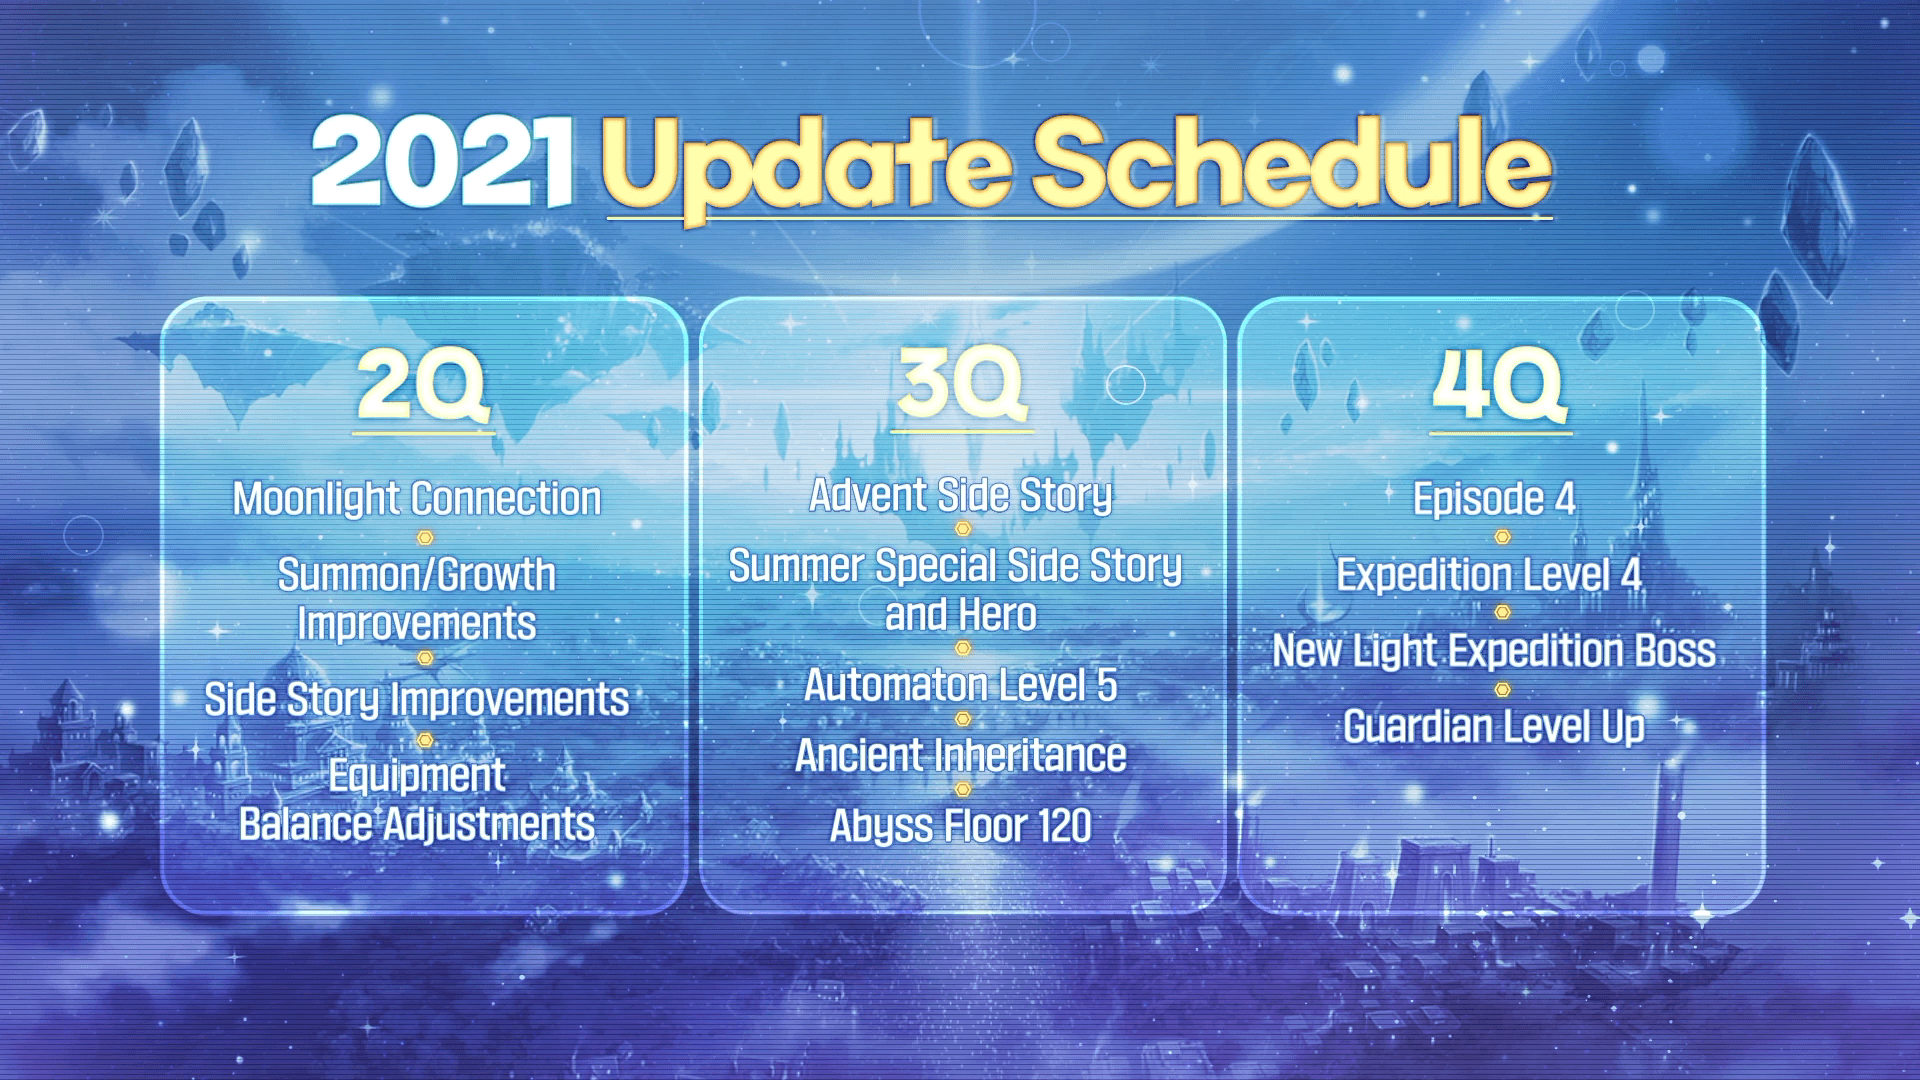 Epic Seven – Moonlight Connections, Growth Improvements, and more in Epic Festival 2021 Update.